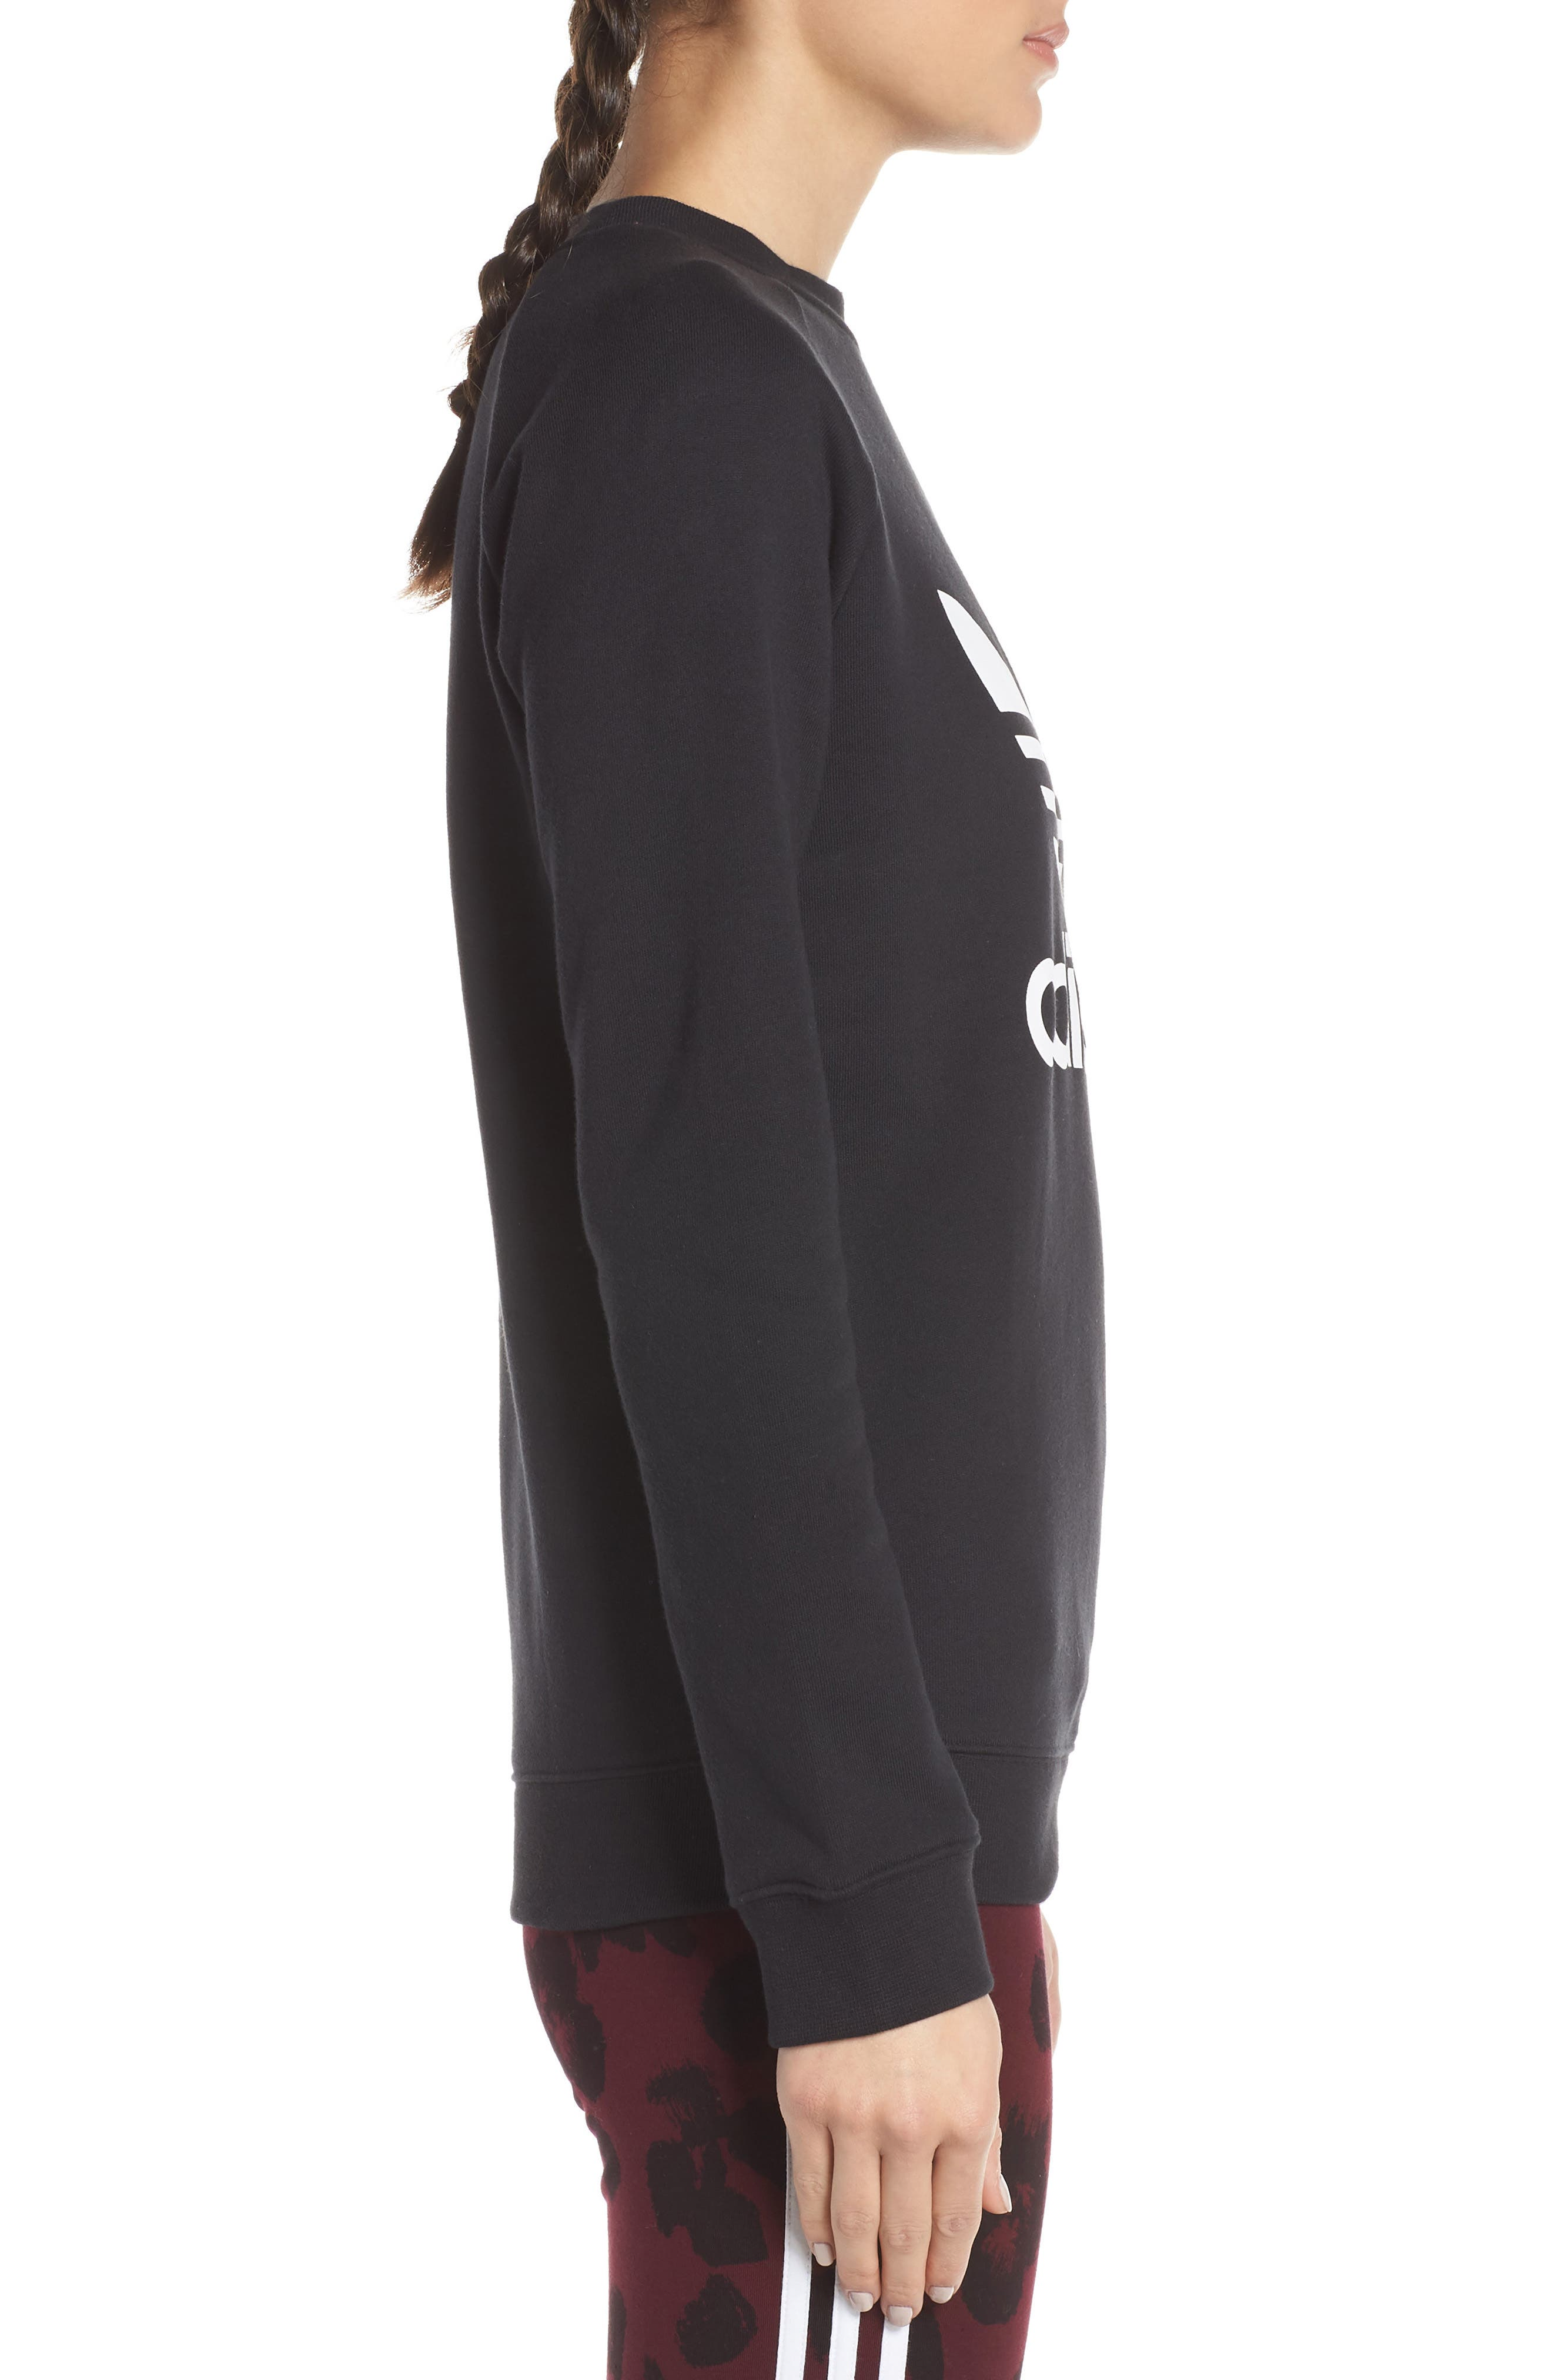 ADIDAS ORIGINALS,                             Trefoil Sweatshirt,                             Alternate thumbnail 3, color,                             BLACK